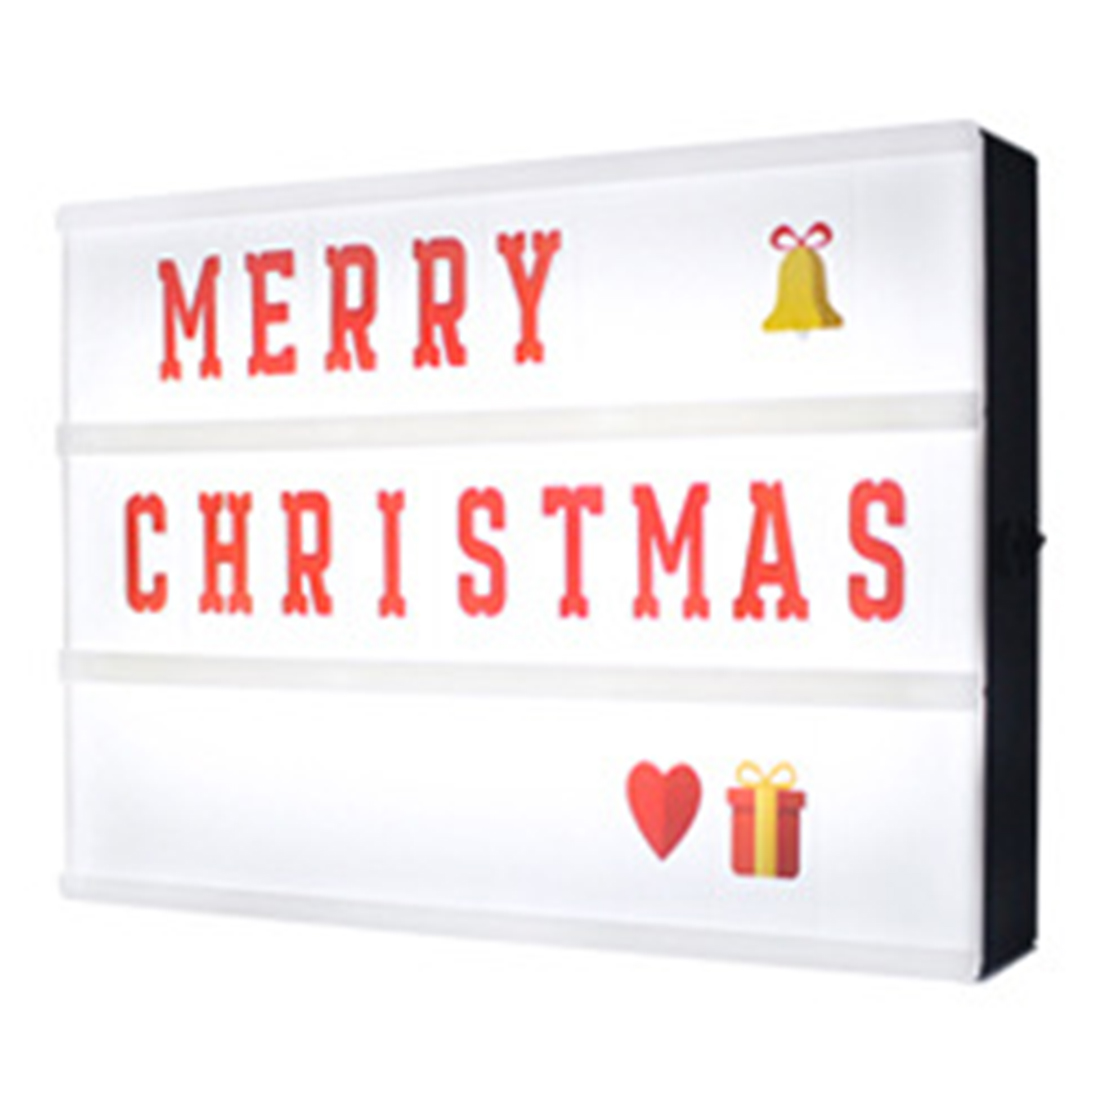 a4 cinematic led porch light up sign box lightbox message board cinema led letter symbol home party wedding lamp decor